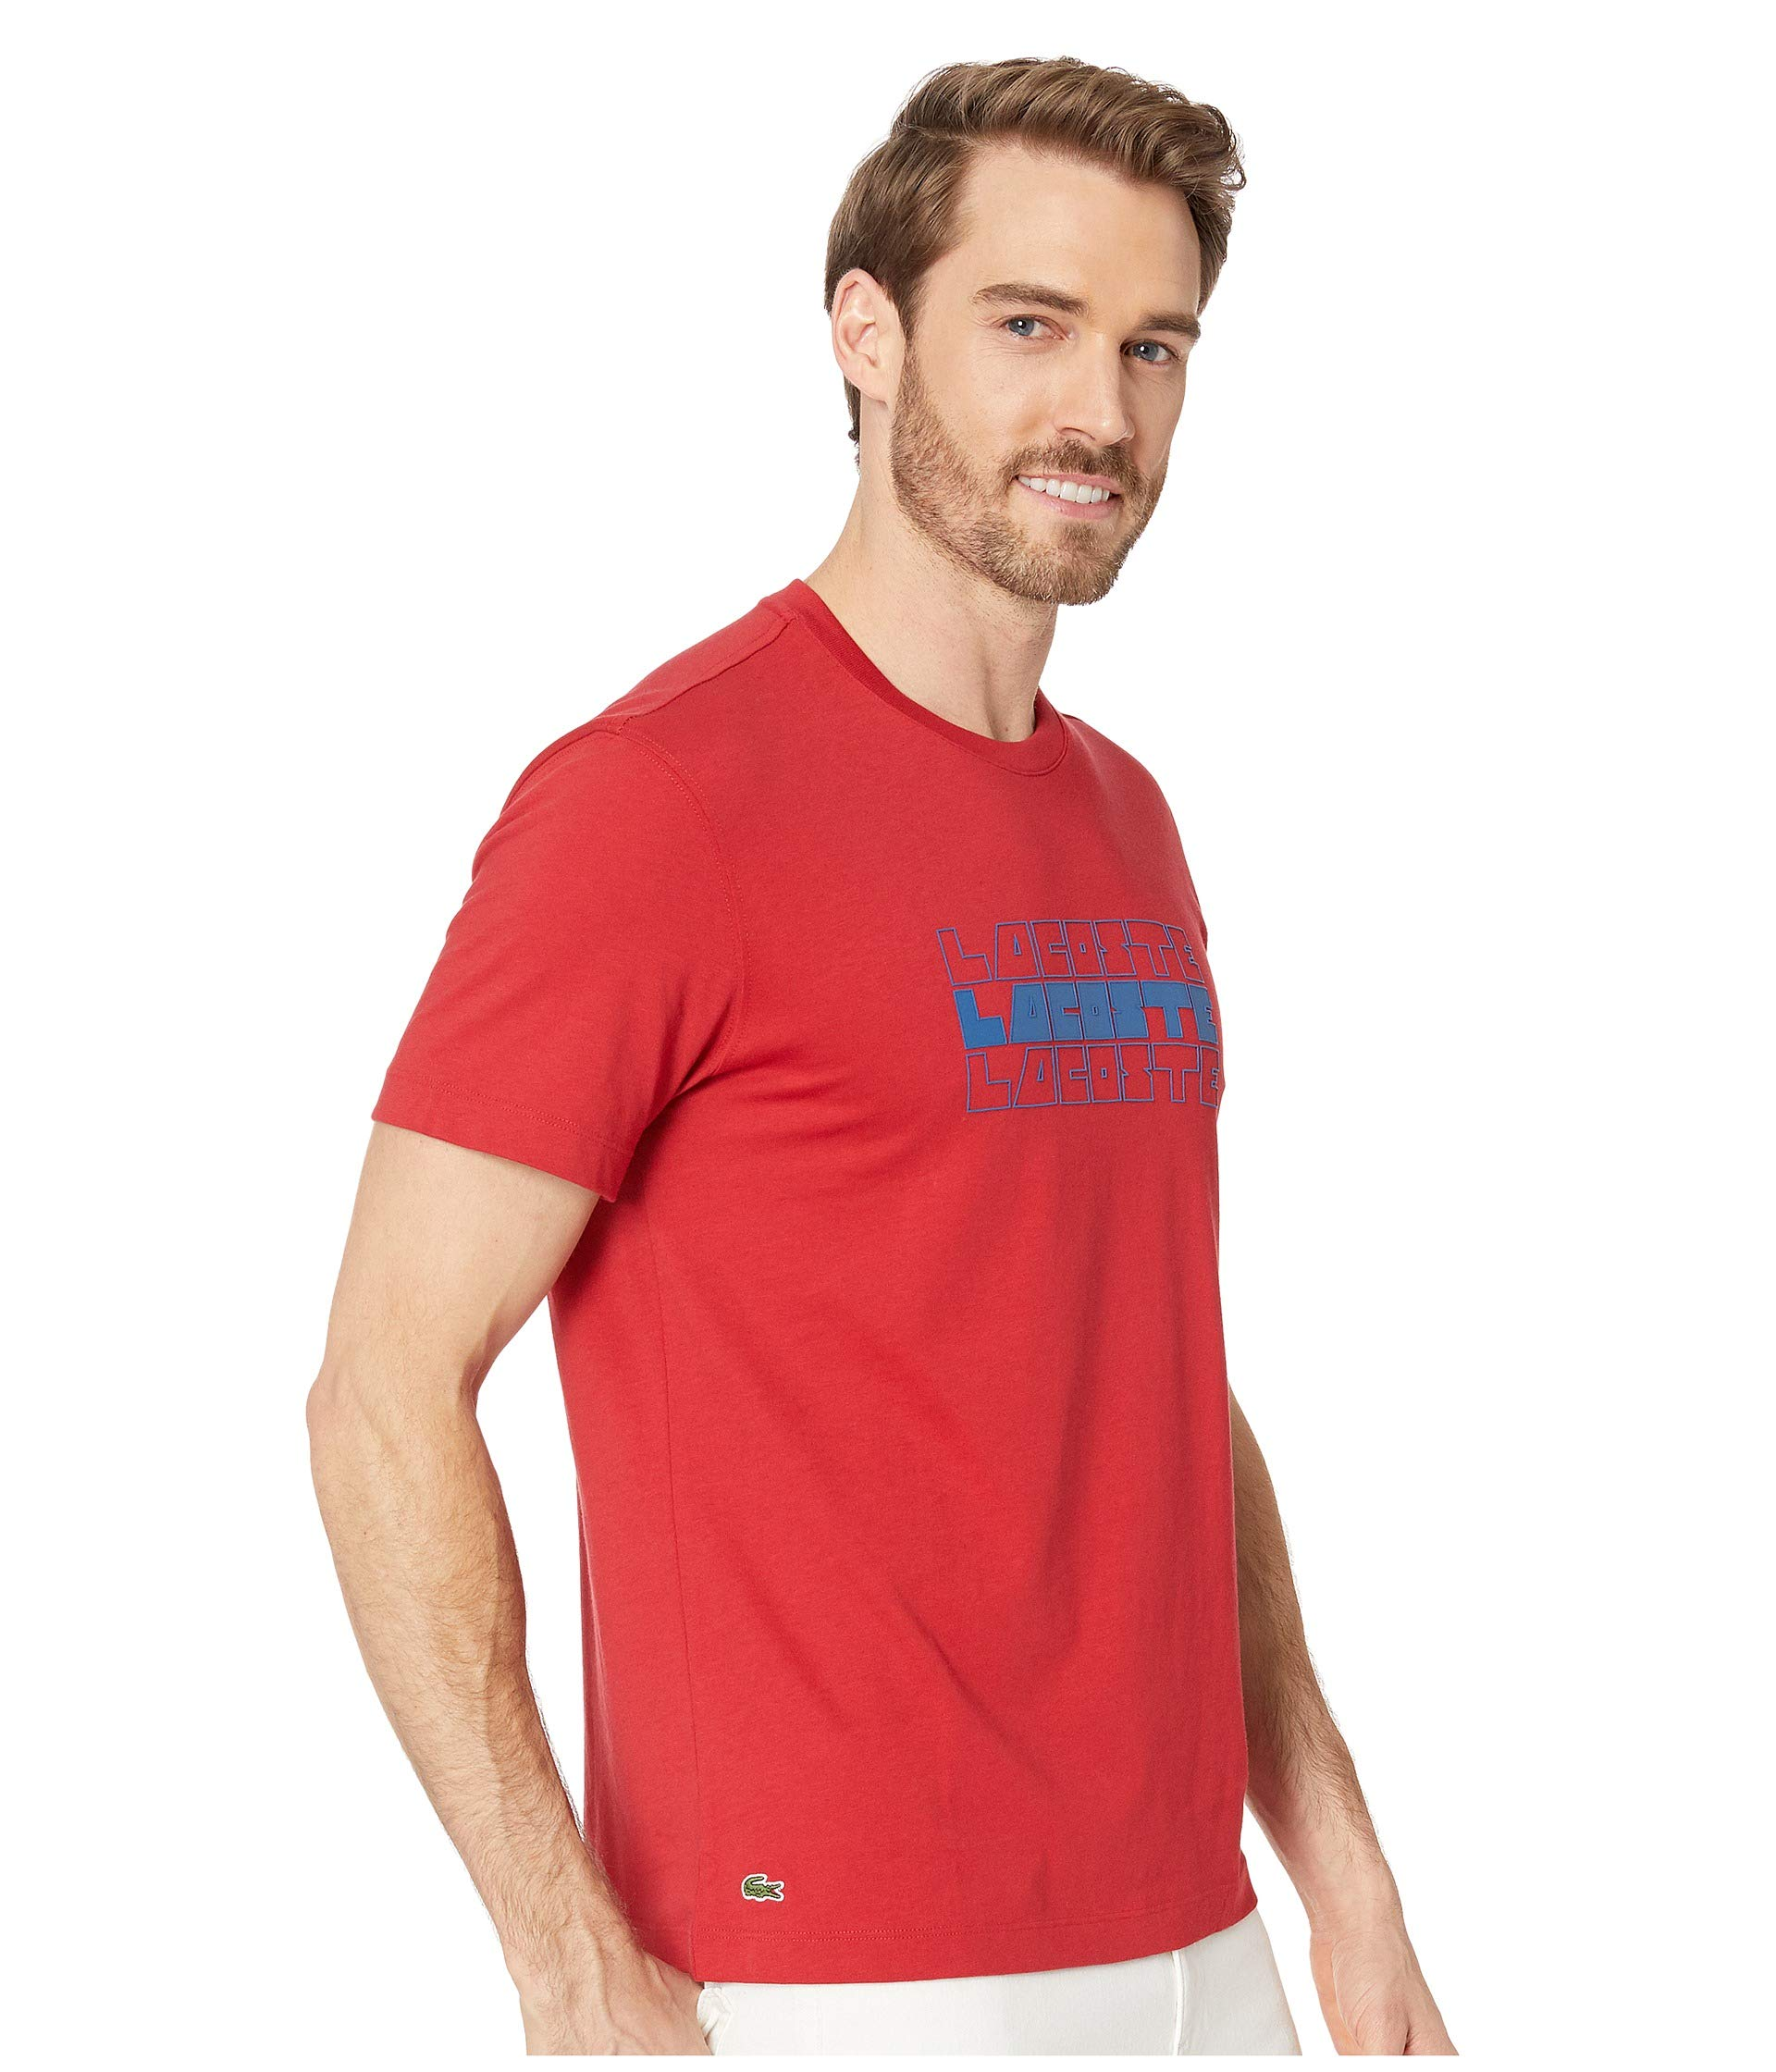 Wordplay shirt Red Fit 3 Regular Short Lacoste Lighthouse T Tier Sleeve oqAYSwBHw